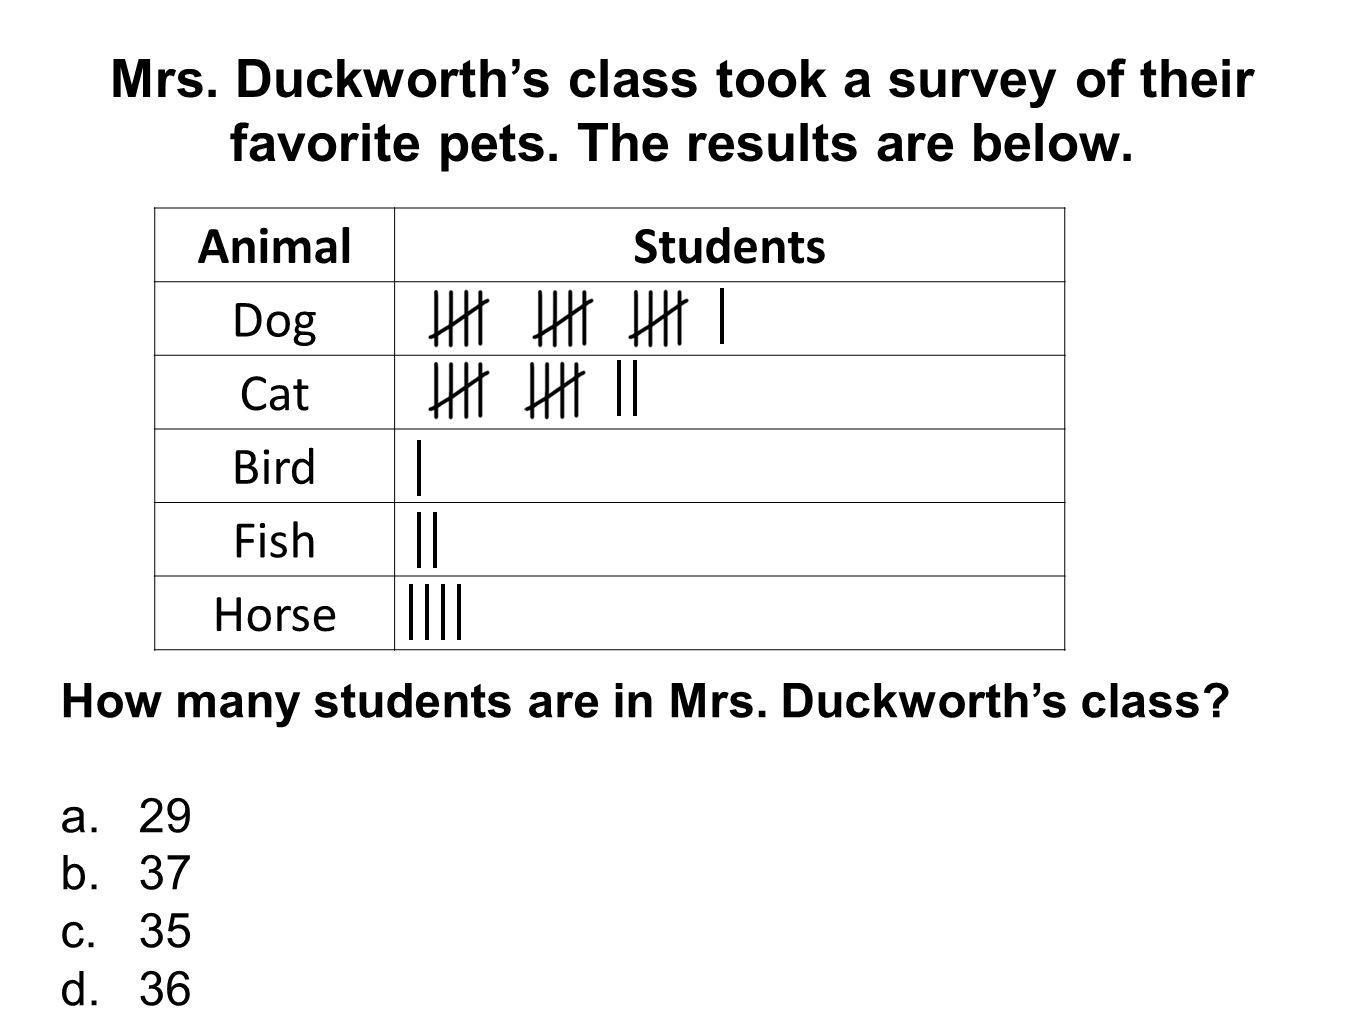 Mrs. Duckworth's class took a survey of their favorite pets